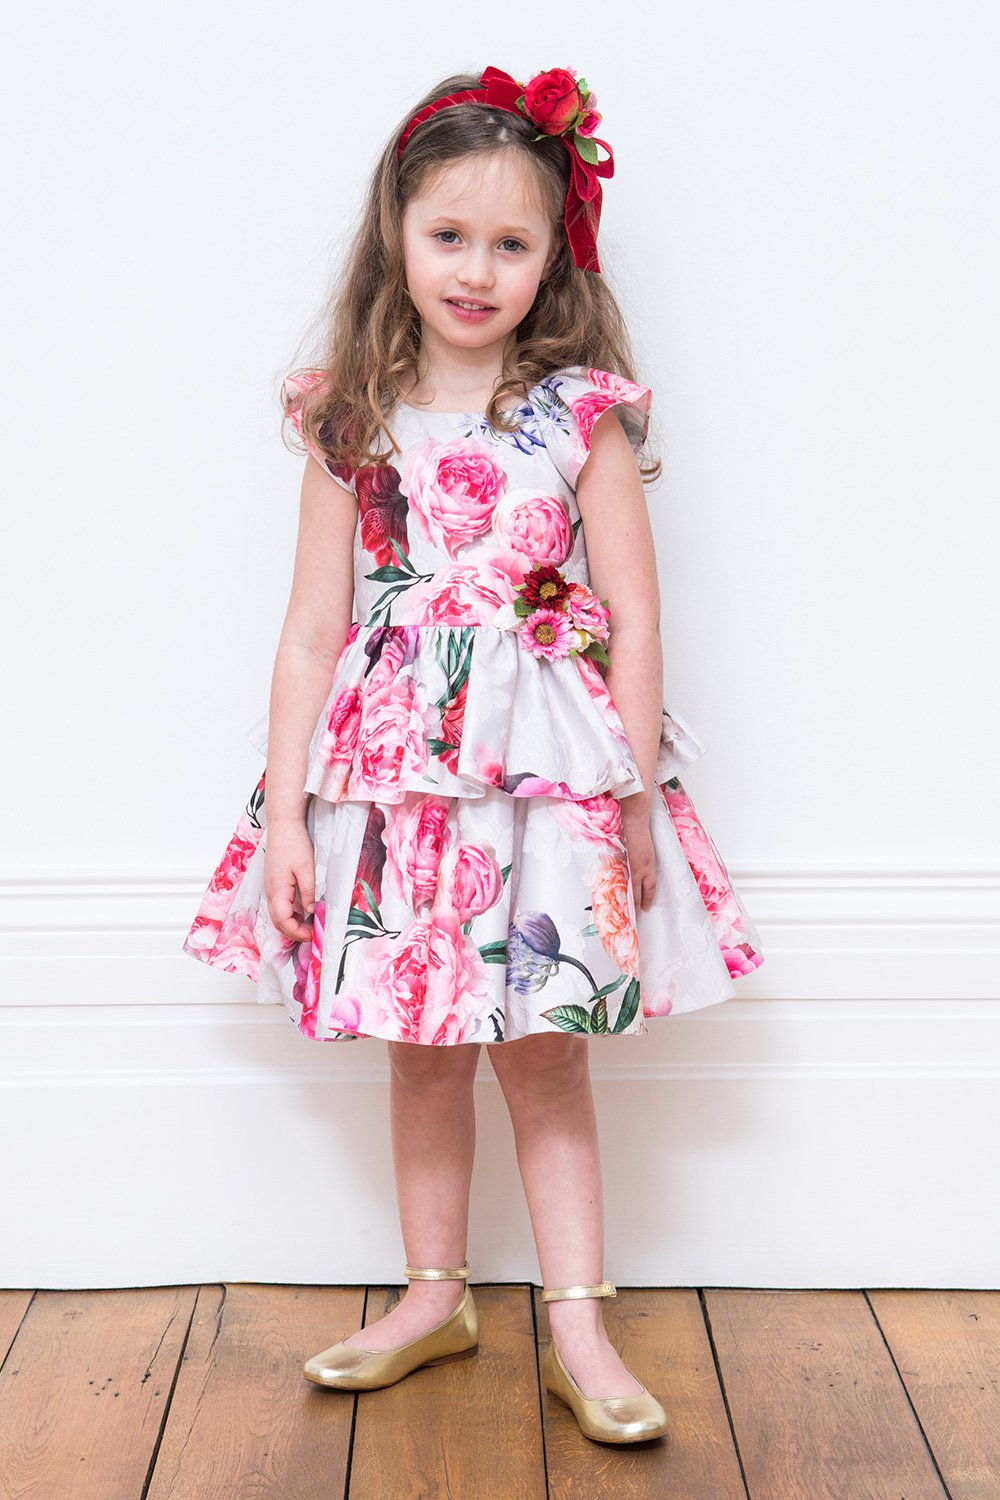 Vestido Bouquet Marfil y Rosado - David Charles Childrens Wear